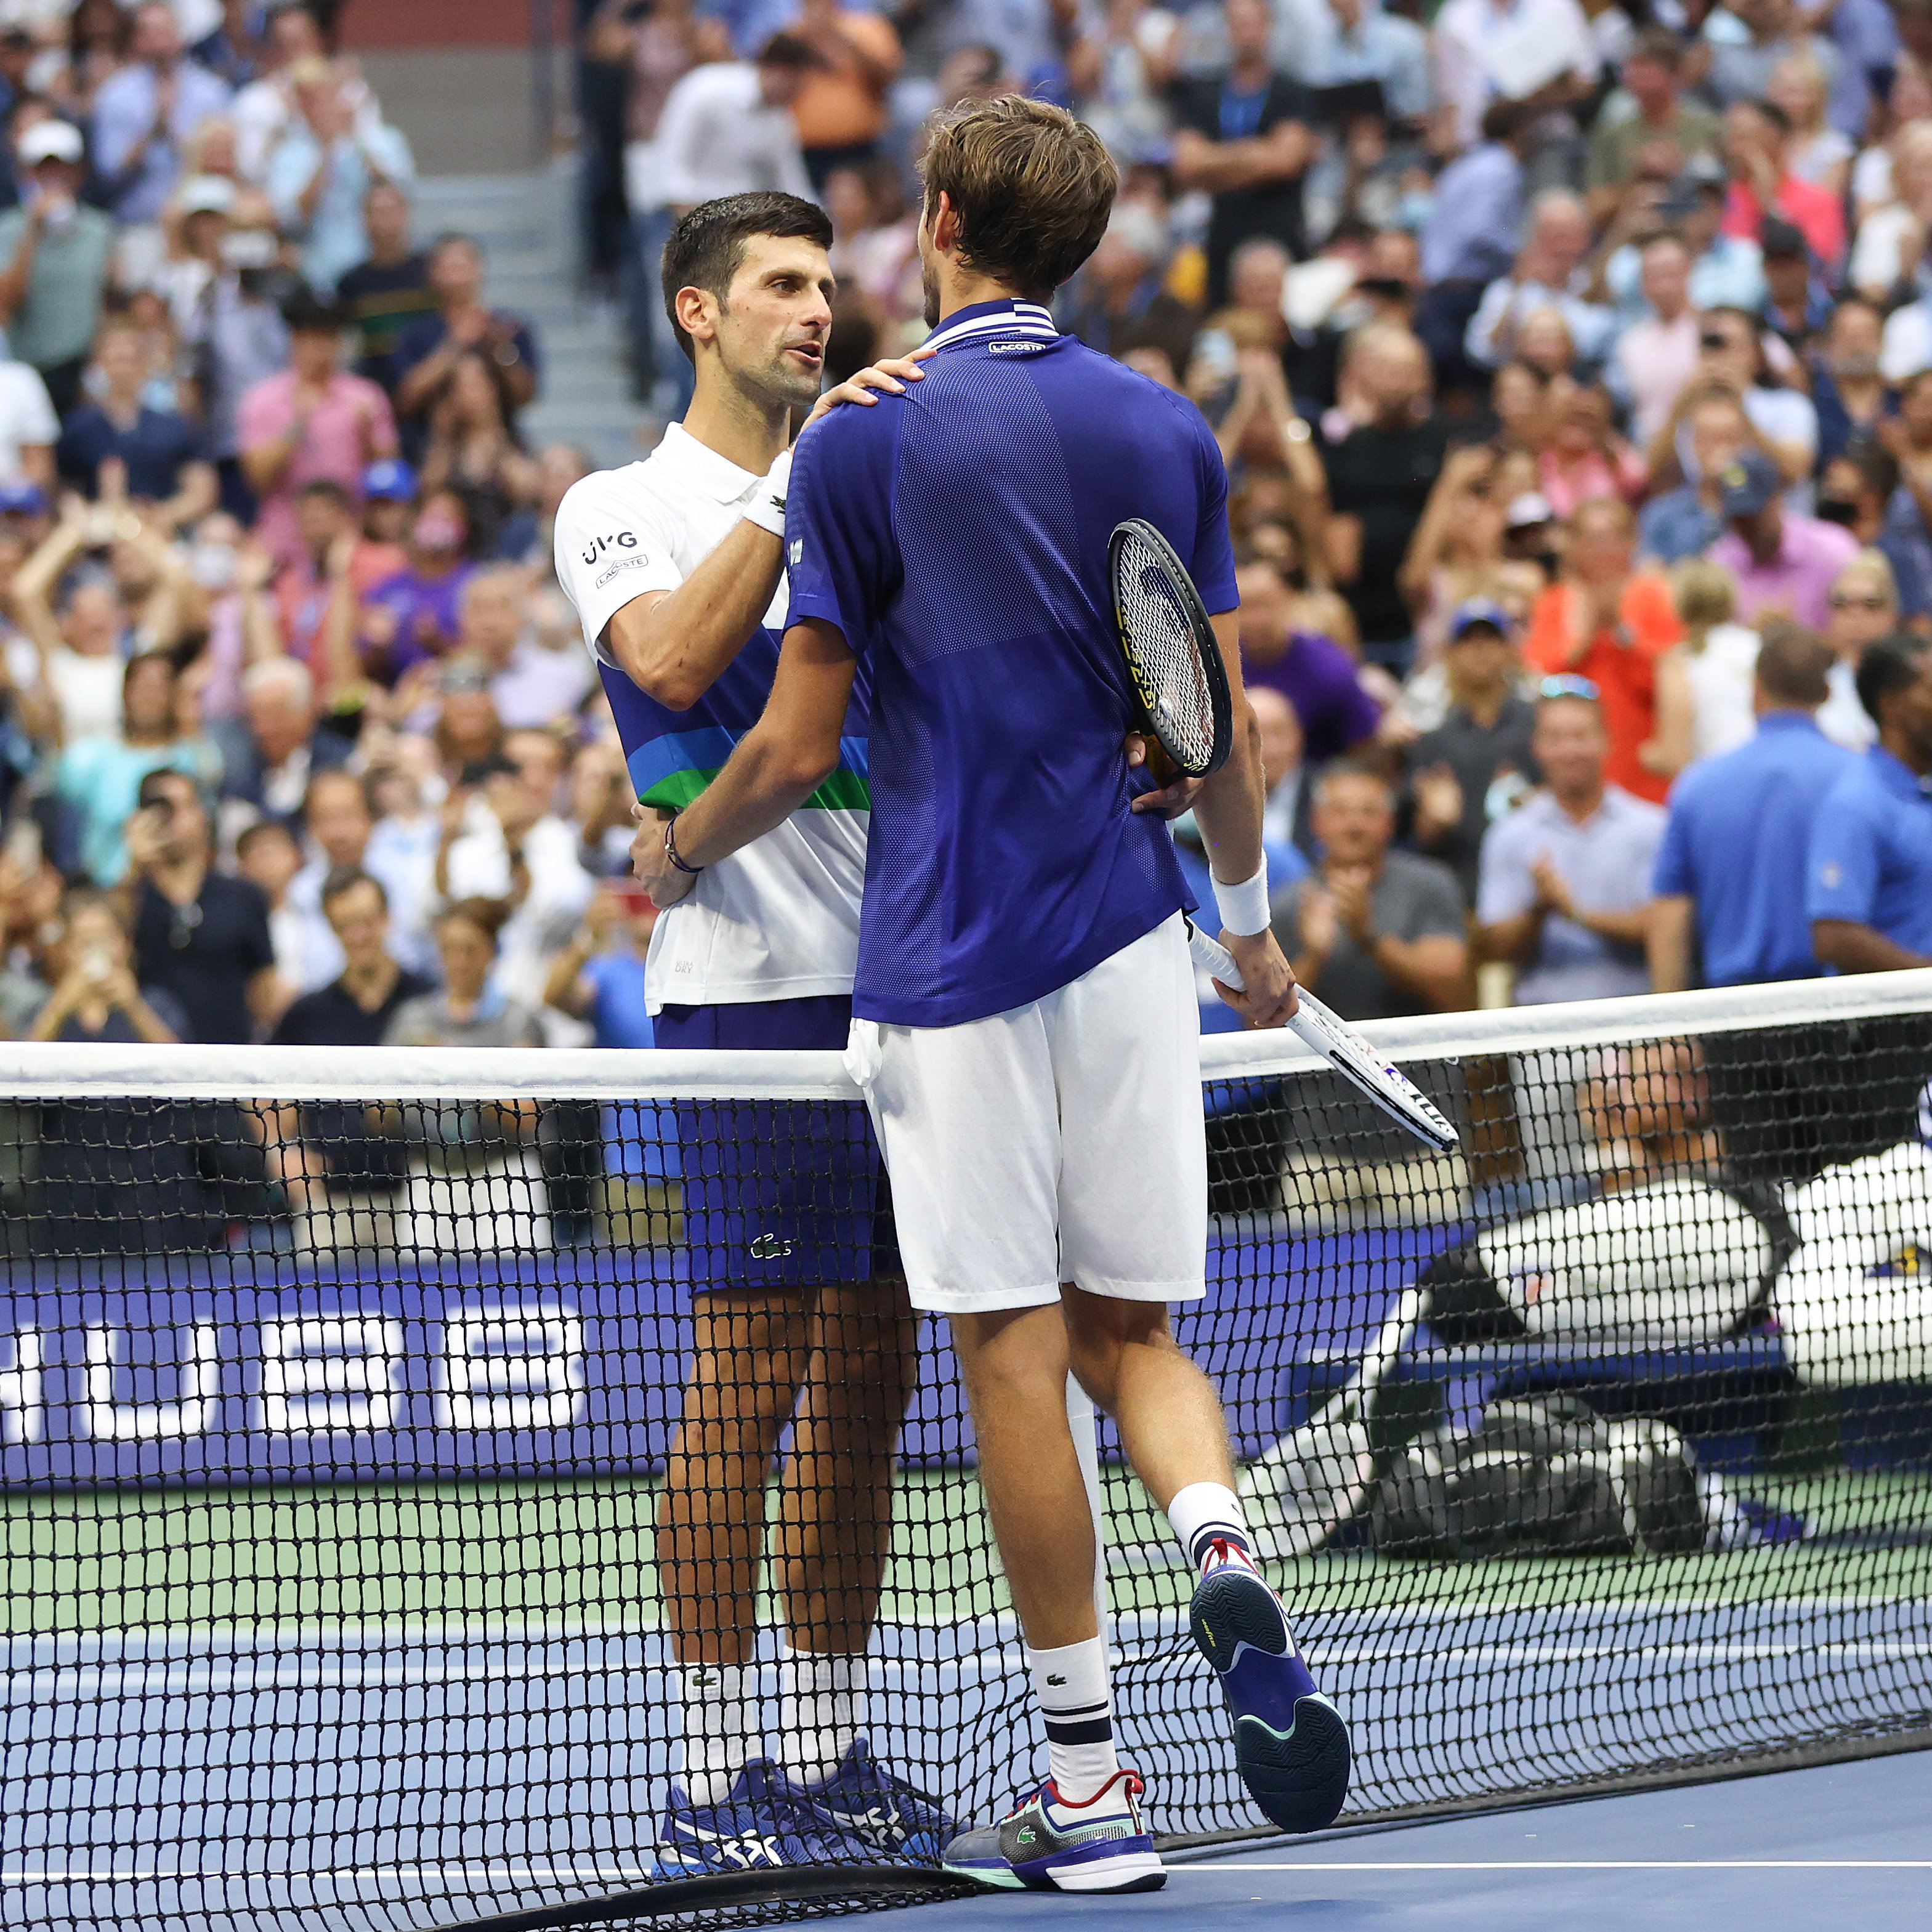 The upset denied Djokovic the chance to become the first man since Rod Laver in 1969 and first tennis player since Steffi Graf in 1988 to complete a calendar slam.